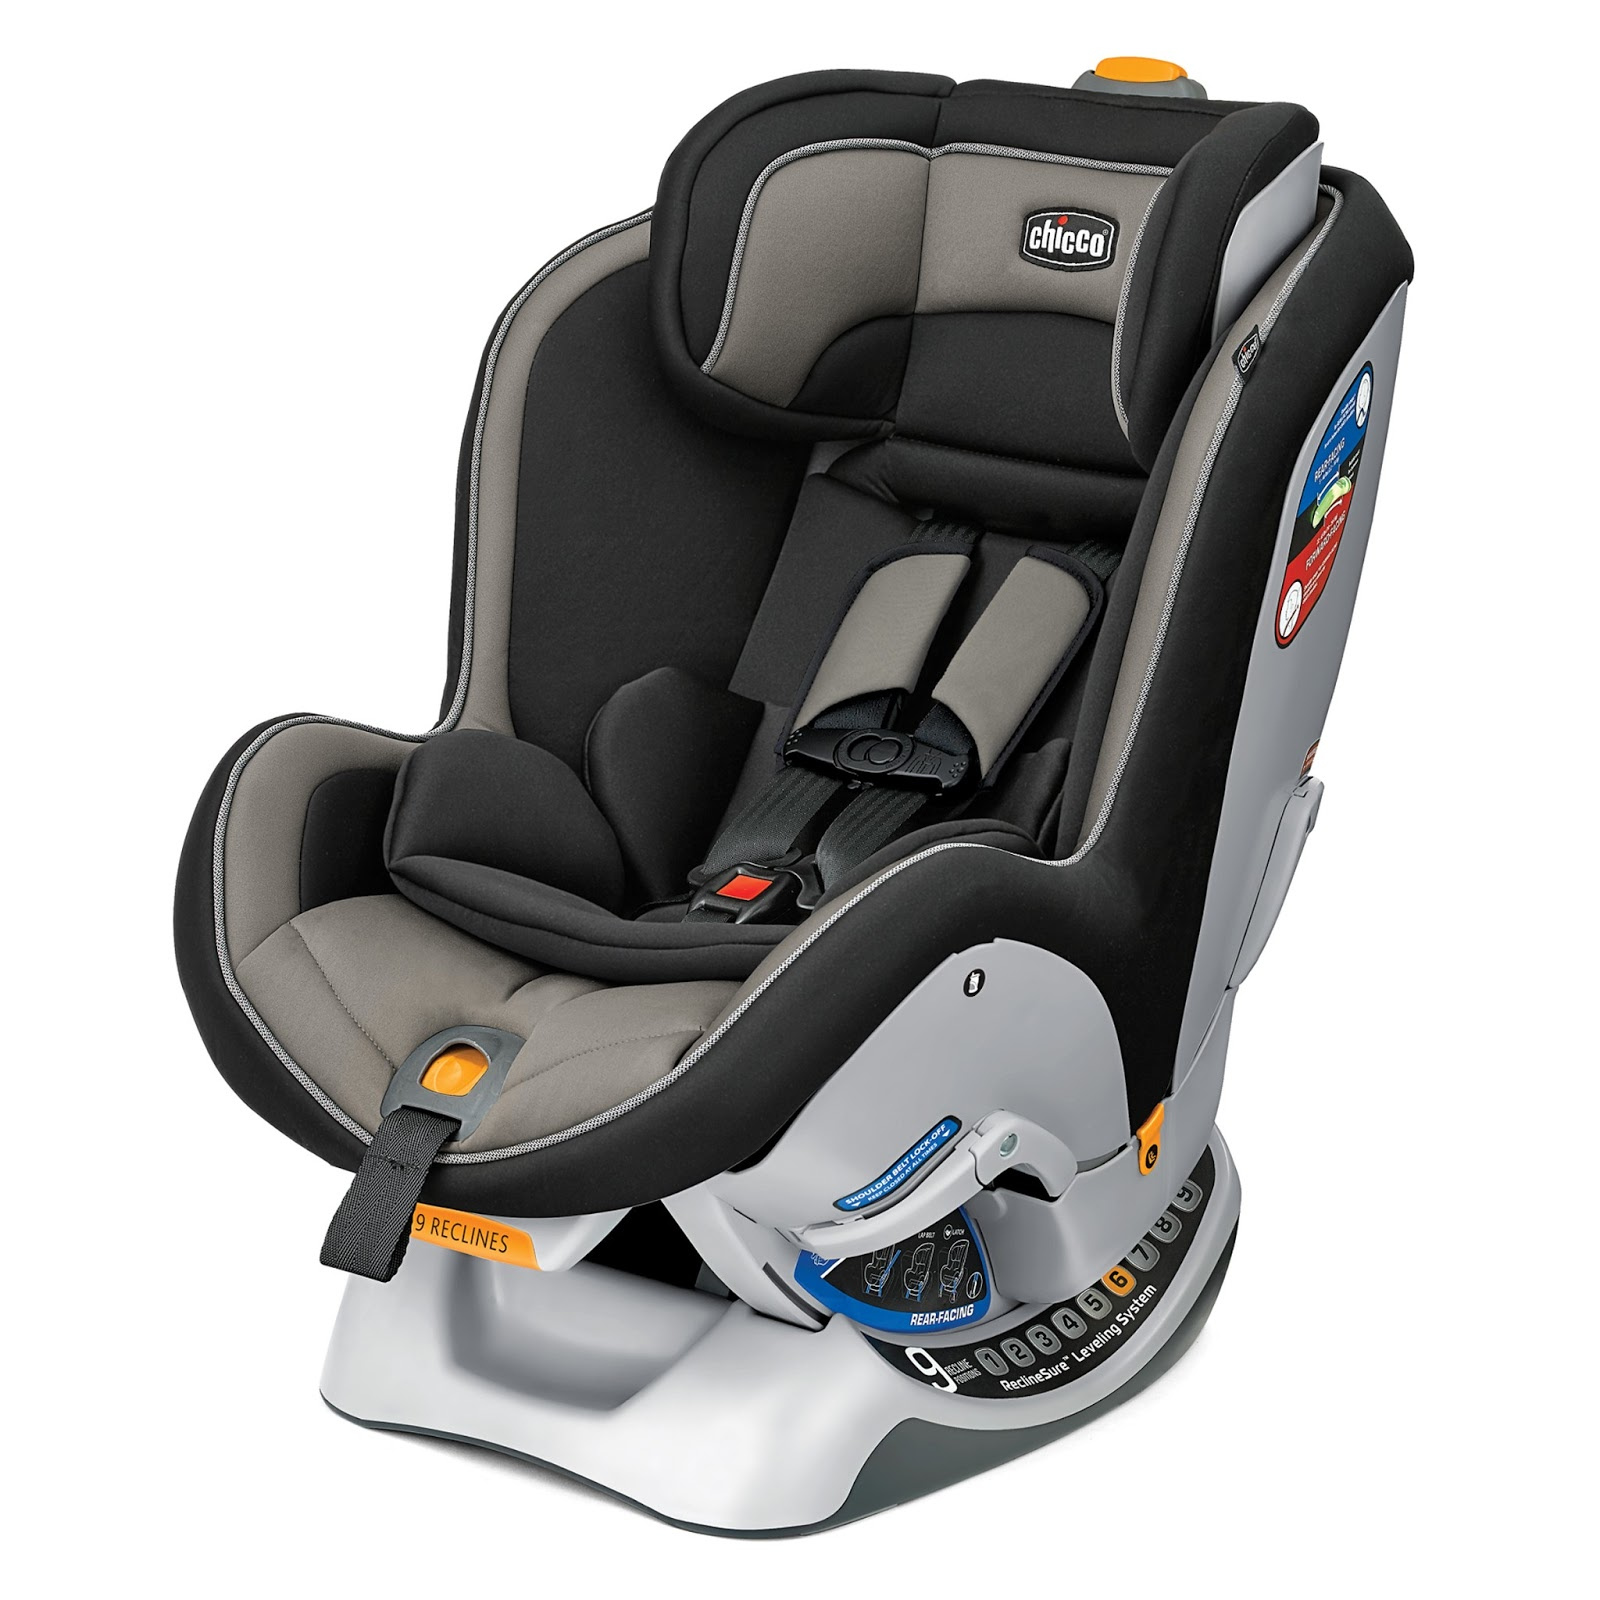 chicco car seats are the new way to be safe our whiskey lullaby. Black Bedroom Furniture Sets. Home Design Ideas